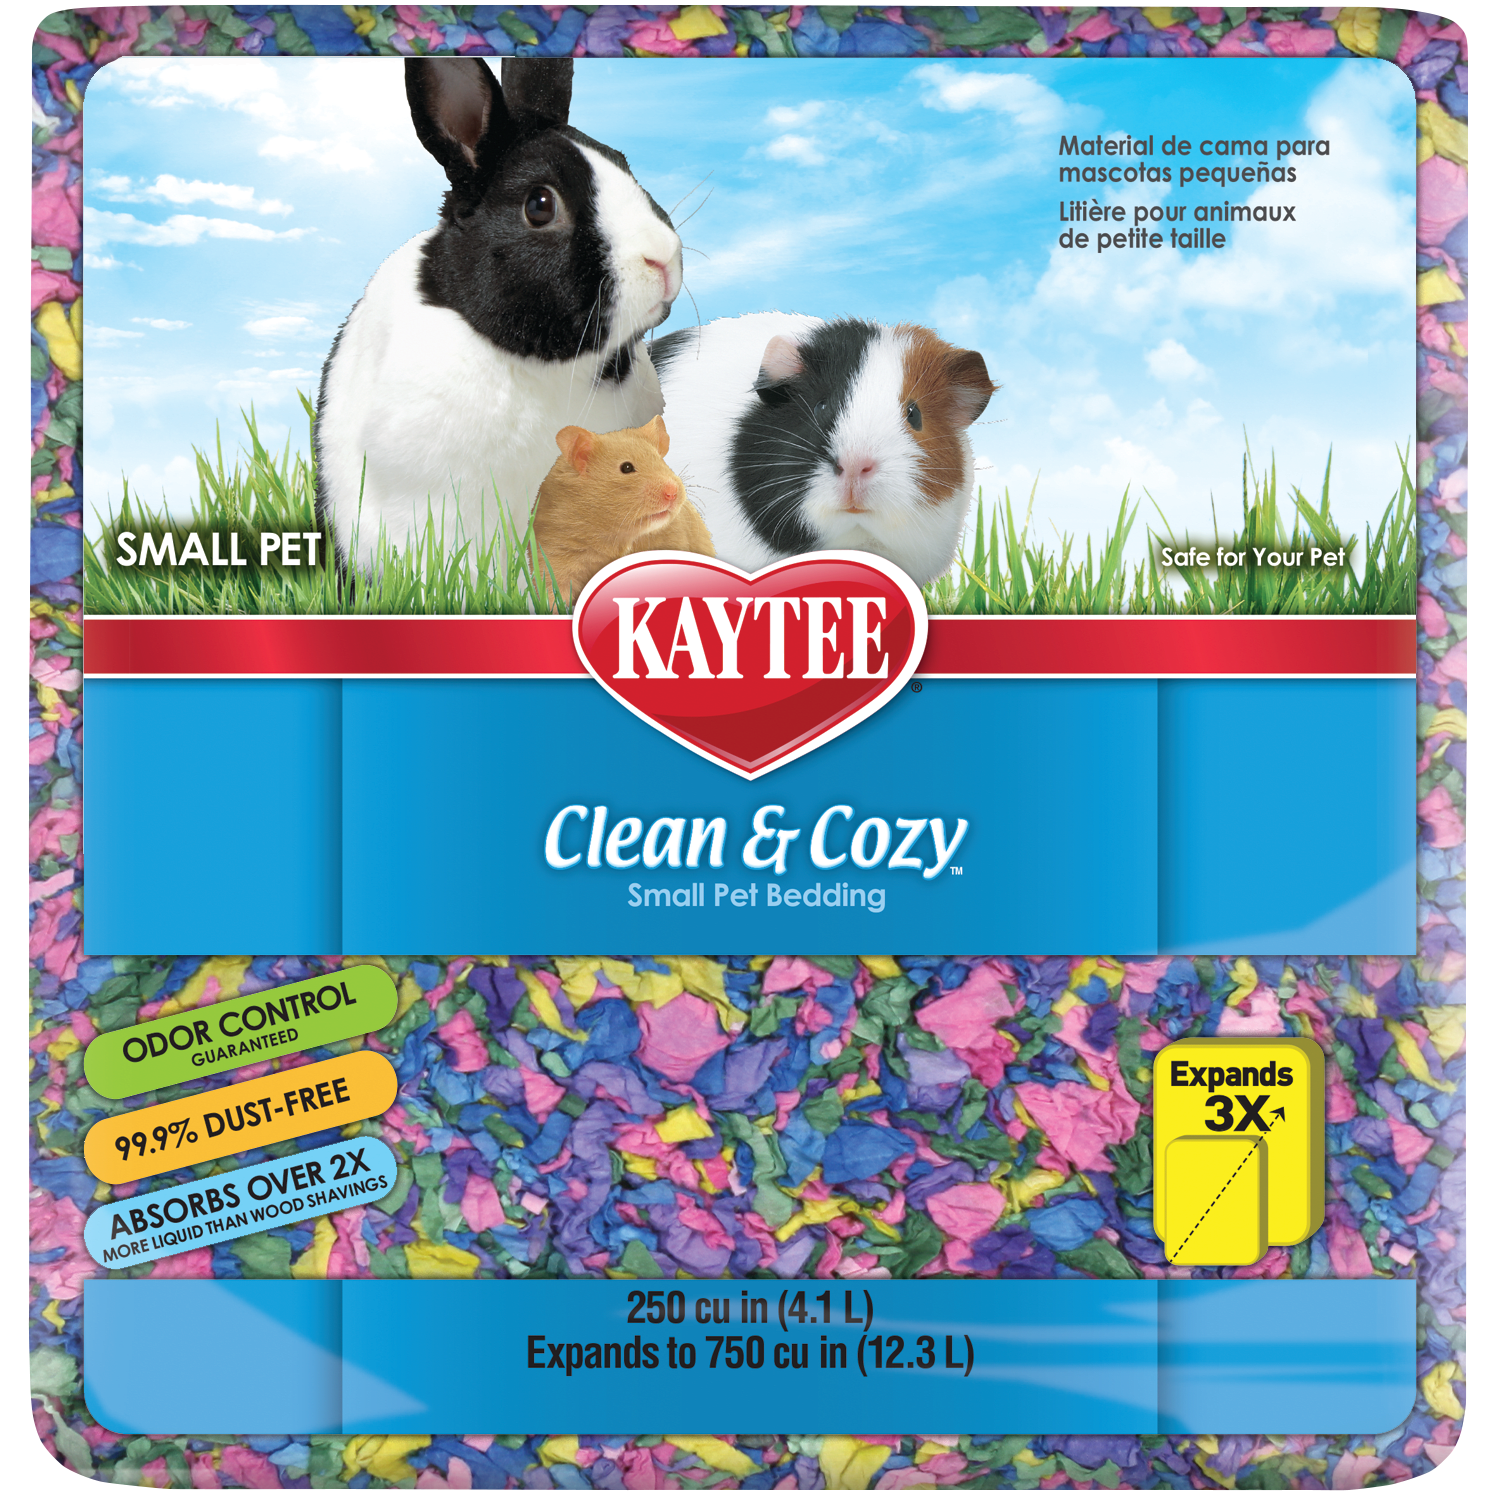 Kaytee Clean & Cozy Birthday Cake Small Animal Bedding, 12.3 Liters (250 cu.in.)